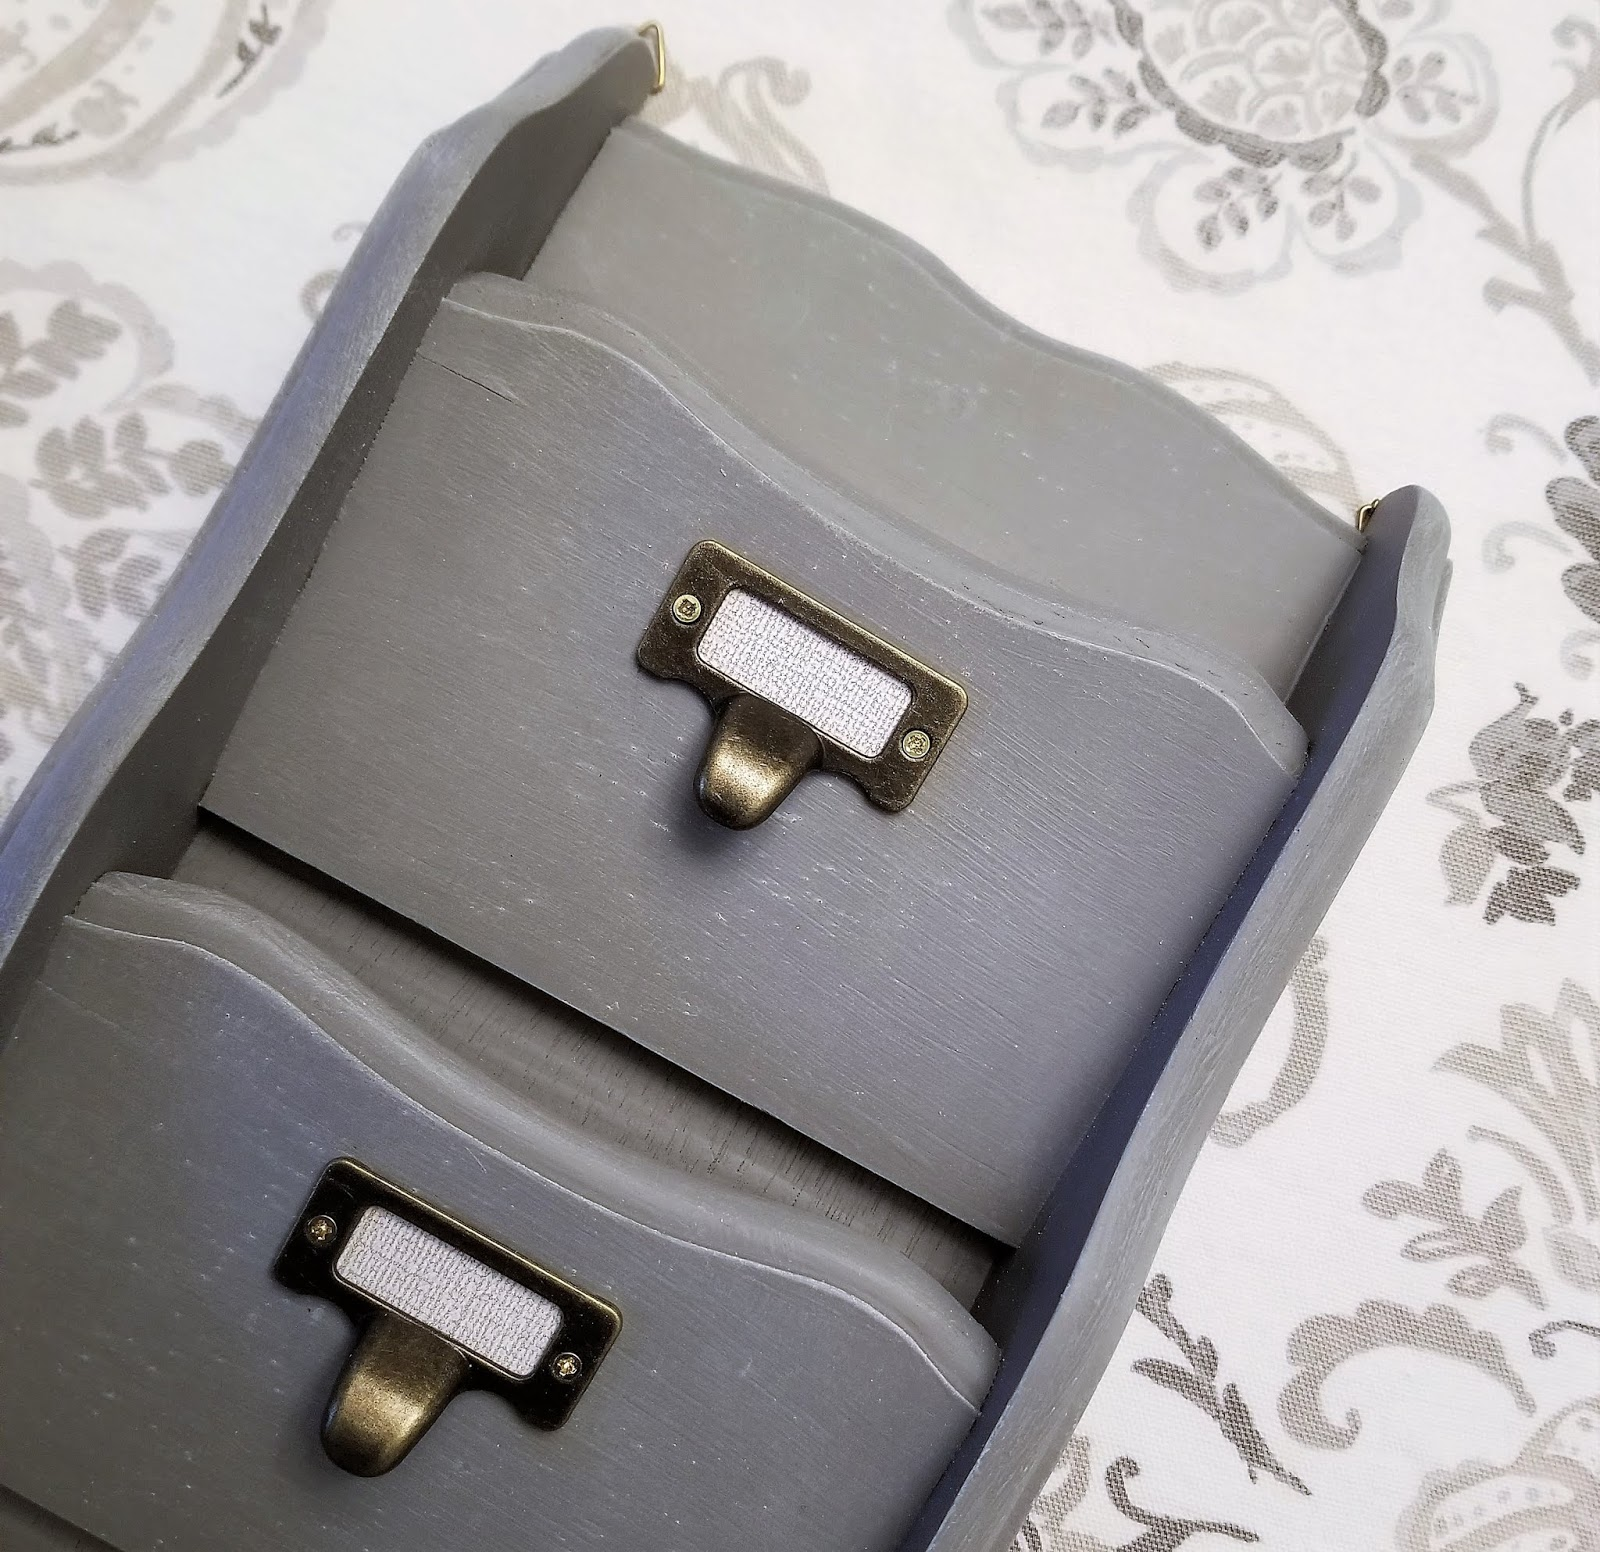 DIY Gray Mail Sorter with Brass Hardware